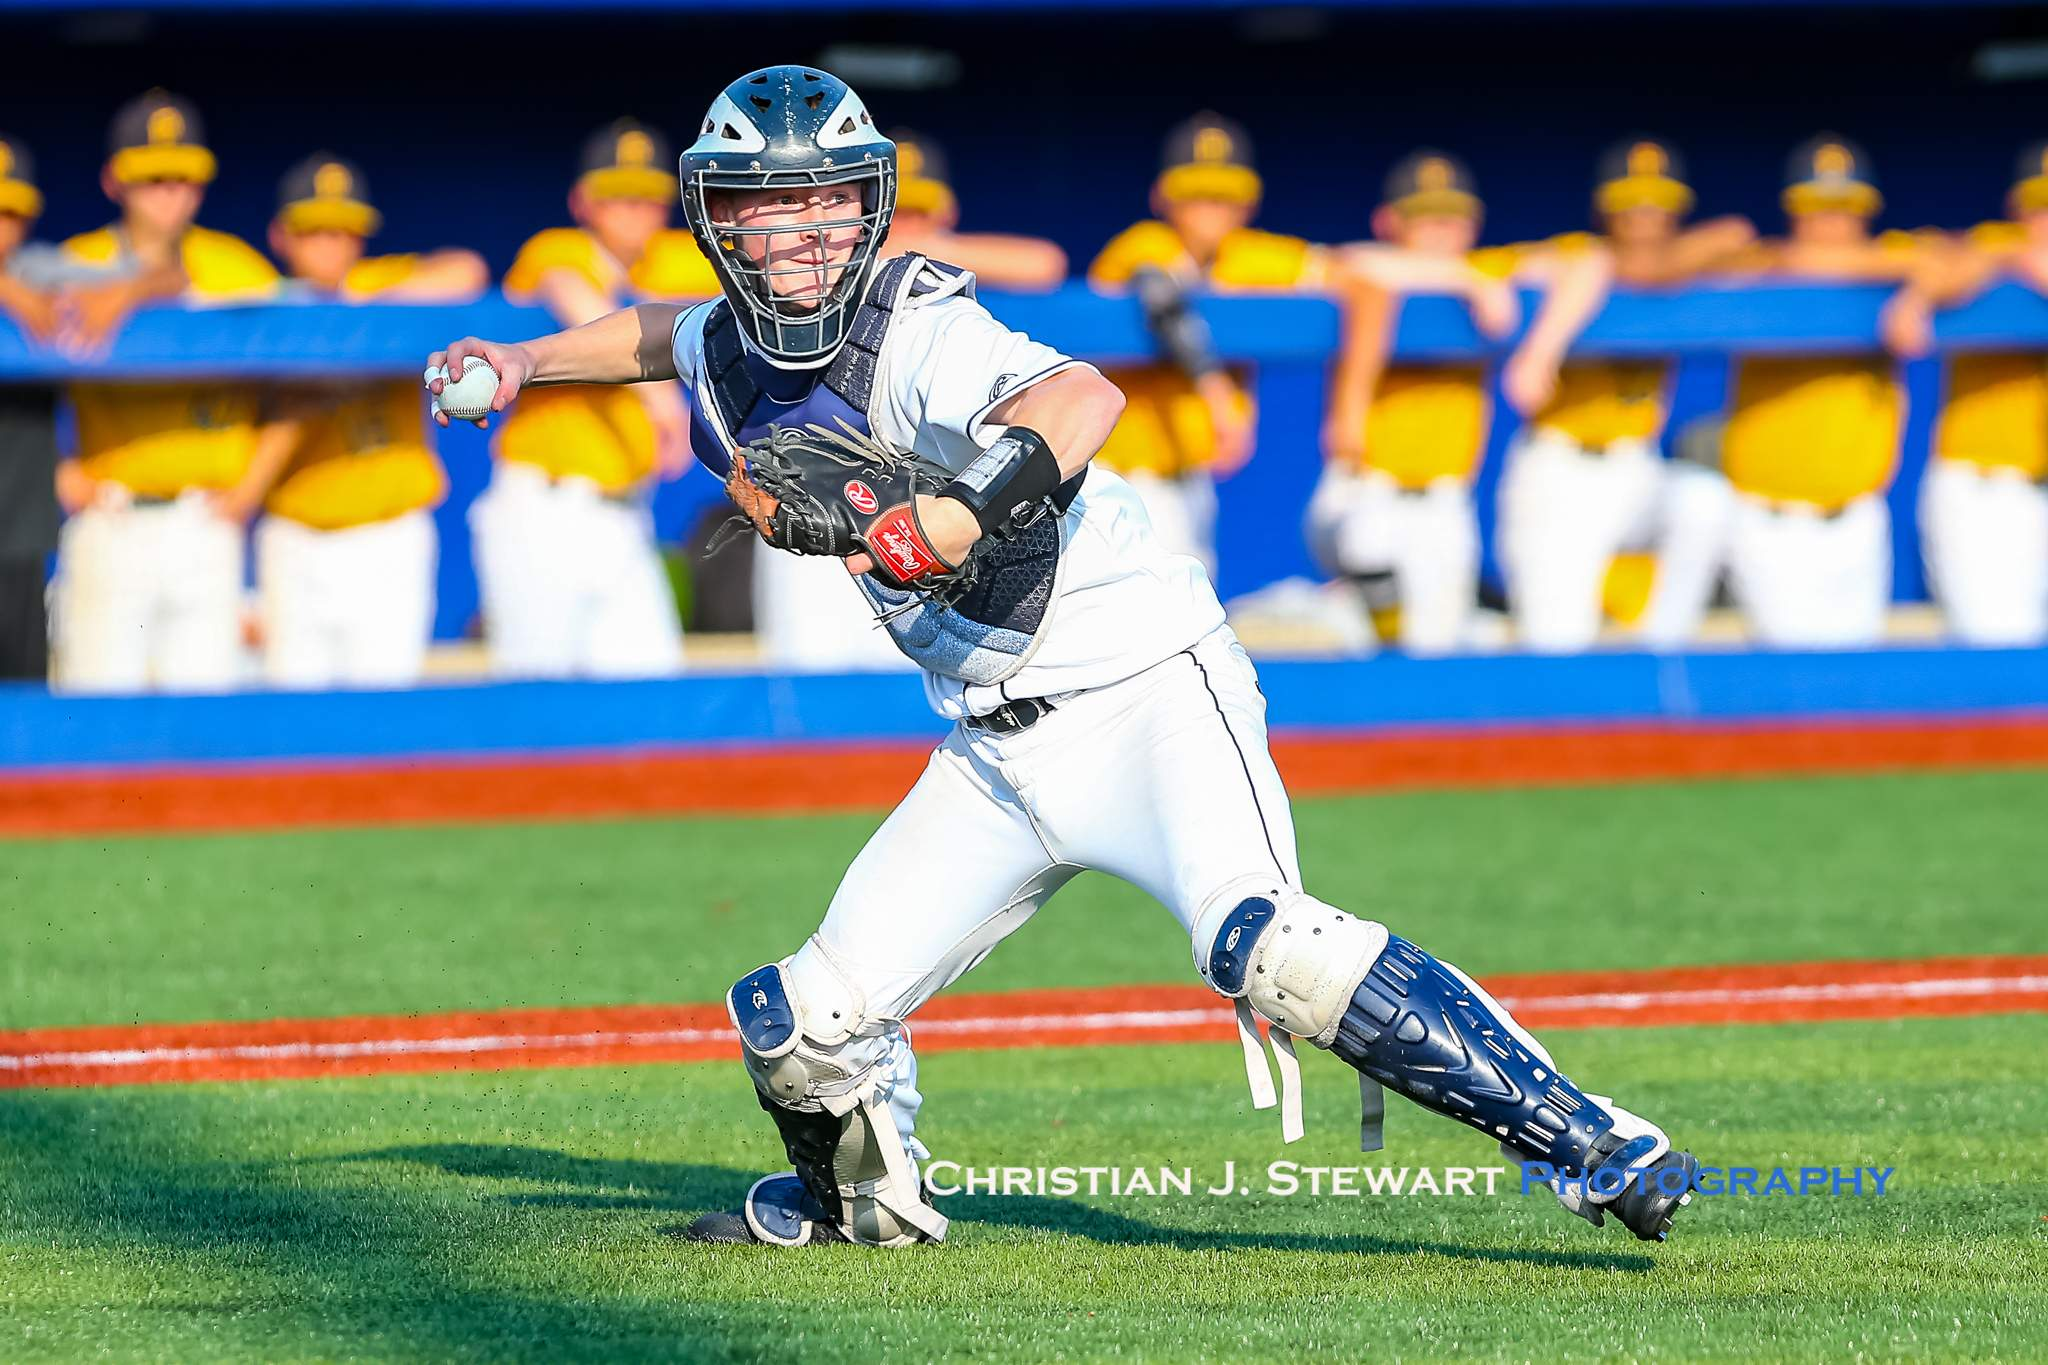 UBC catcher Cason Black is ready to throw after fielding a bunt against Nanaimo Friday (Photo: Christian J. Stewart)